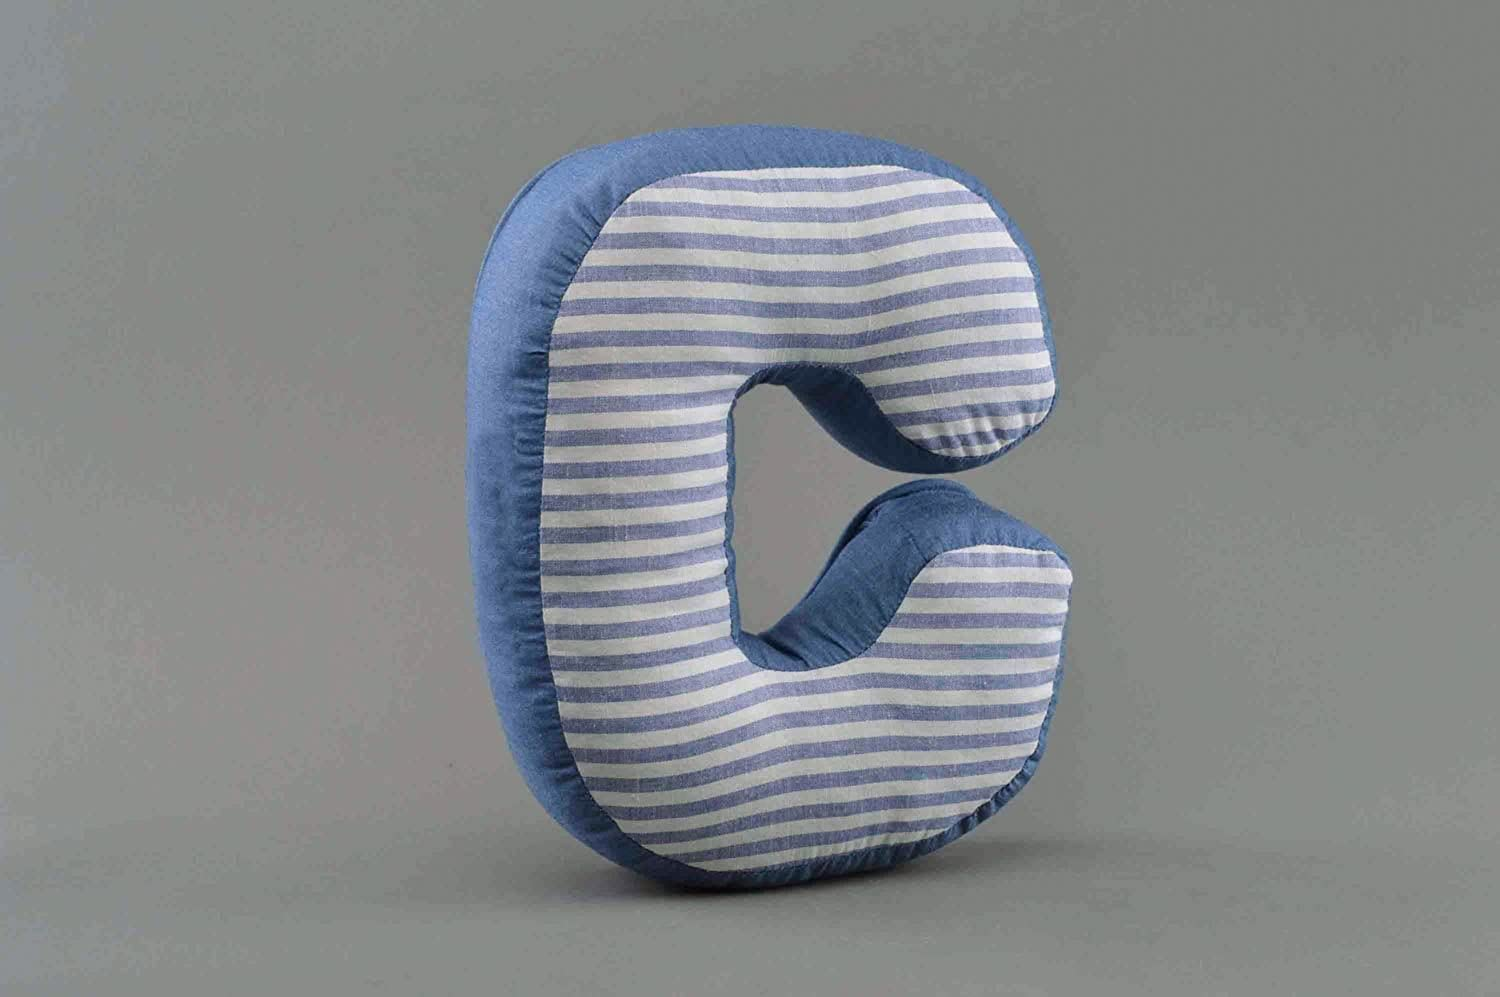 Homemade Decorative Soft Toy Pillow Letter C Sewn of bluee and Stripped Fabric